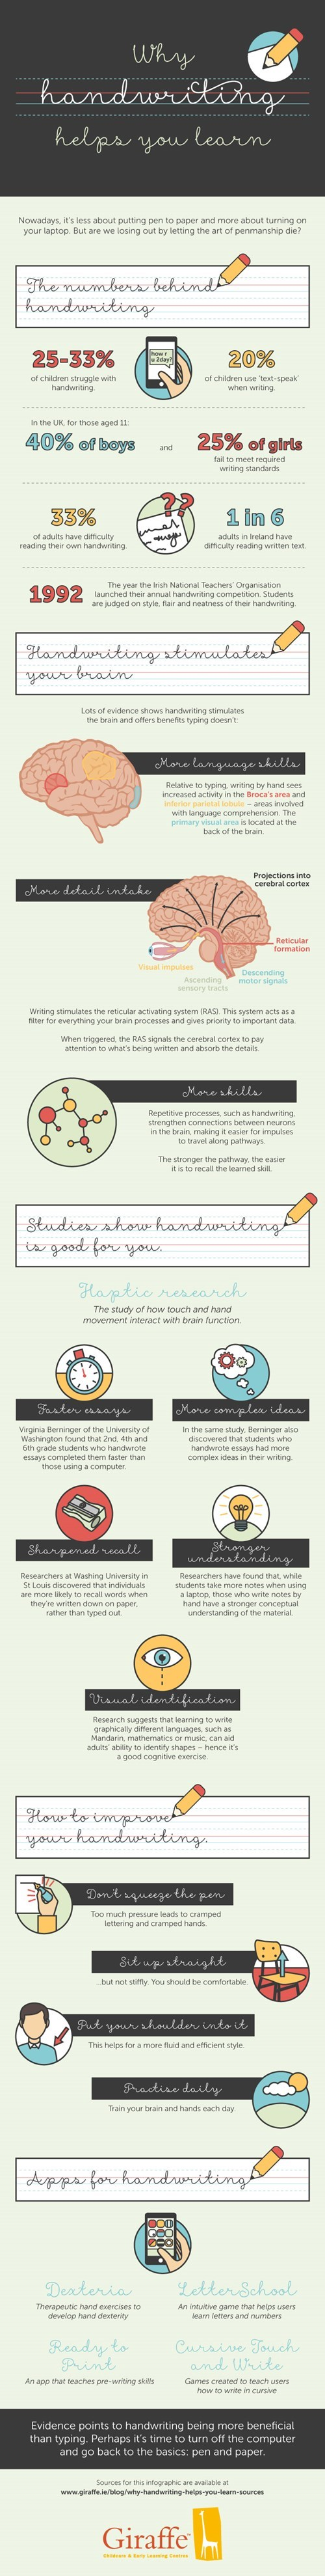 Why Handwriting Helps You Learn